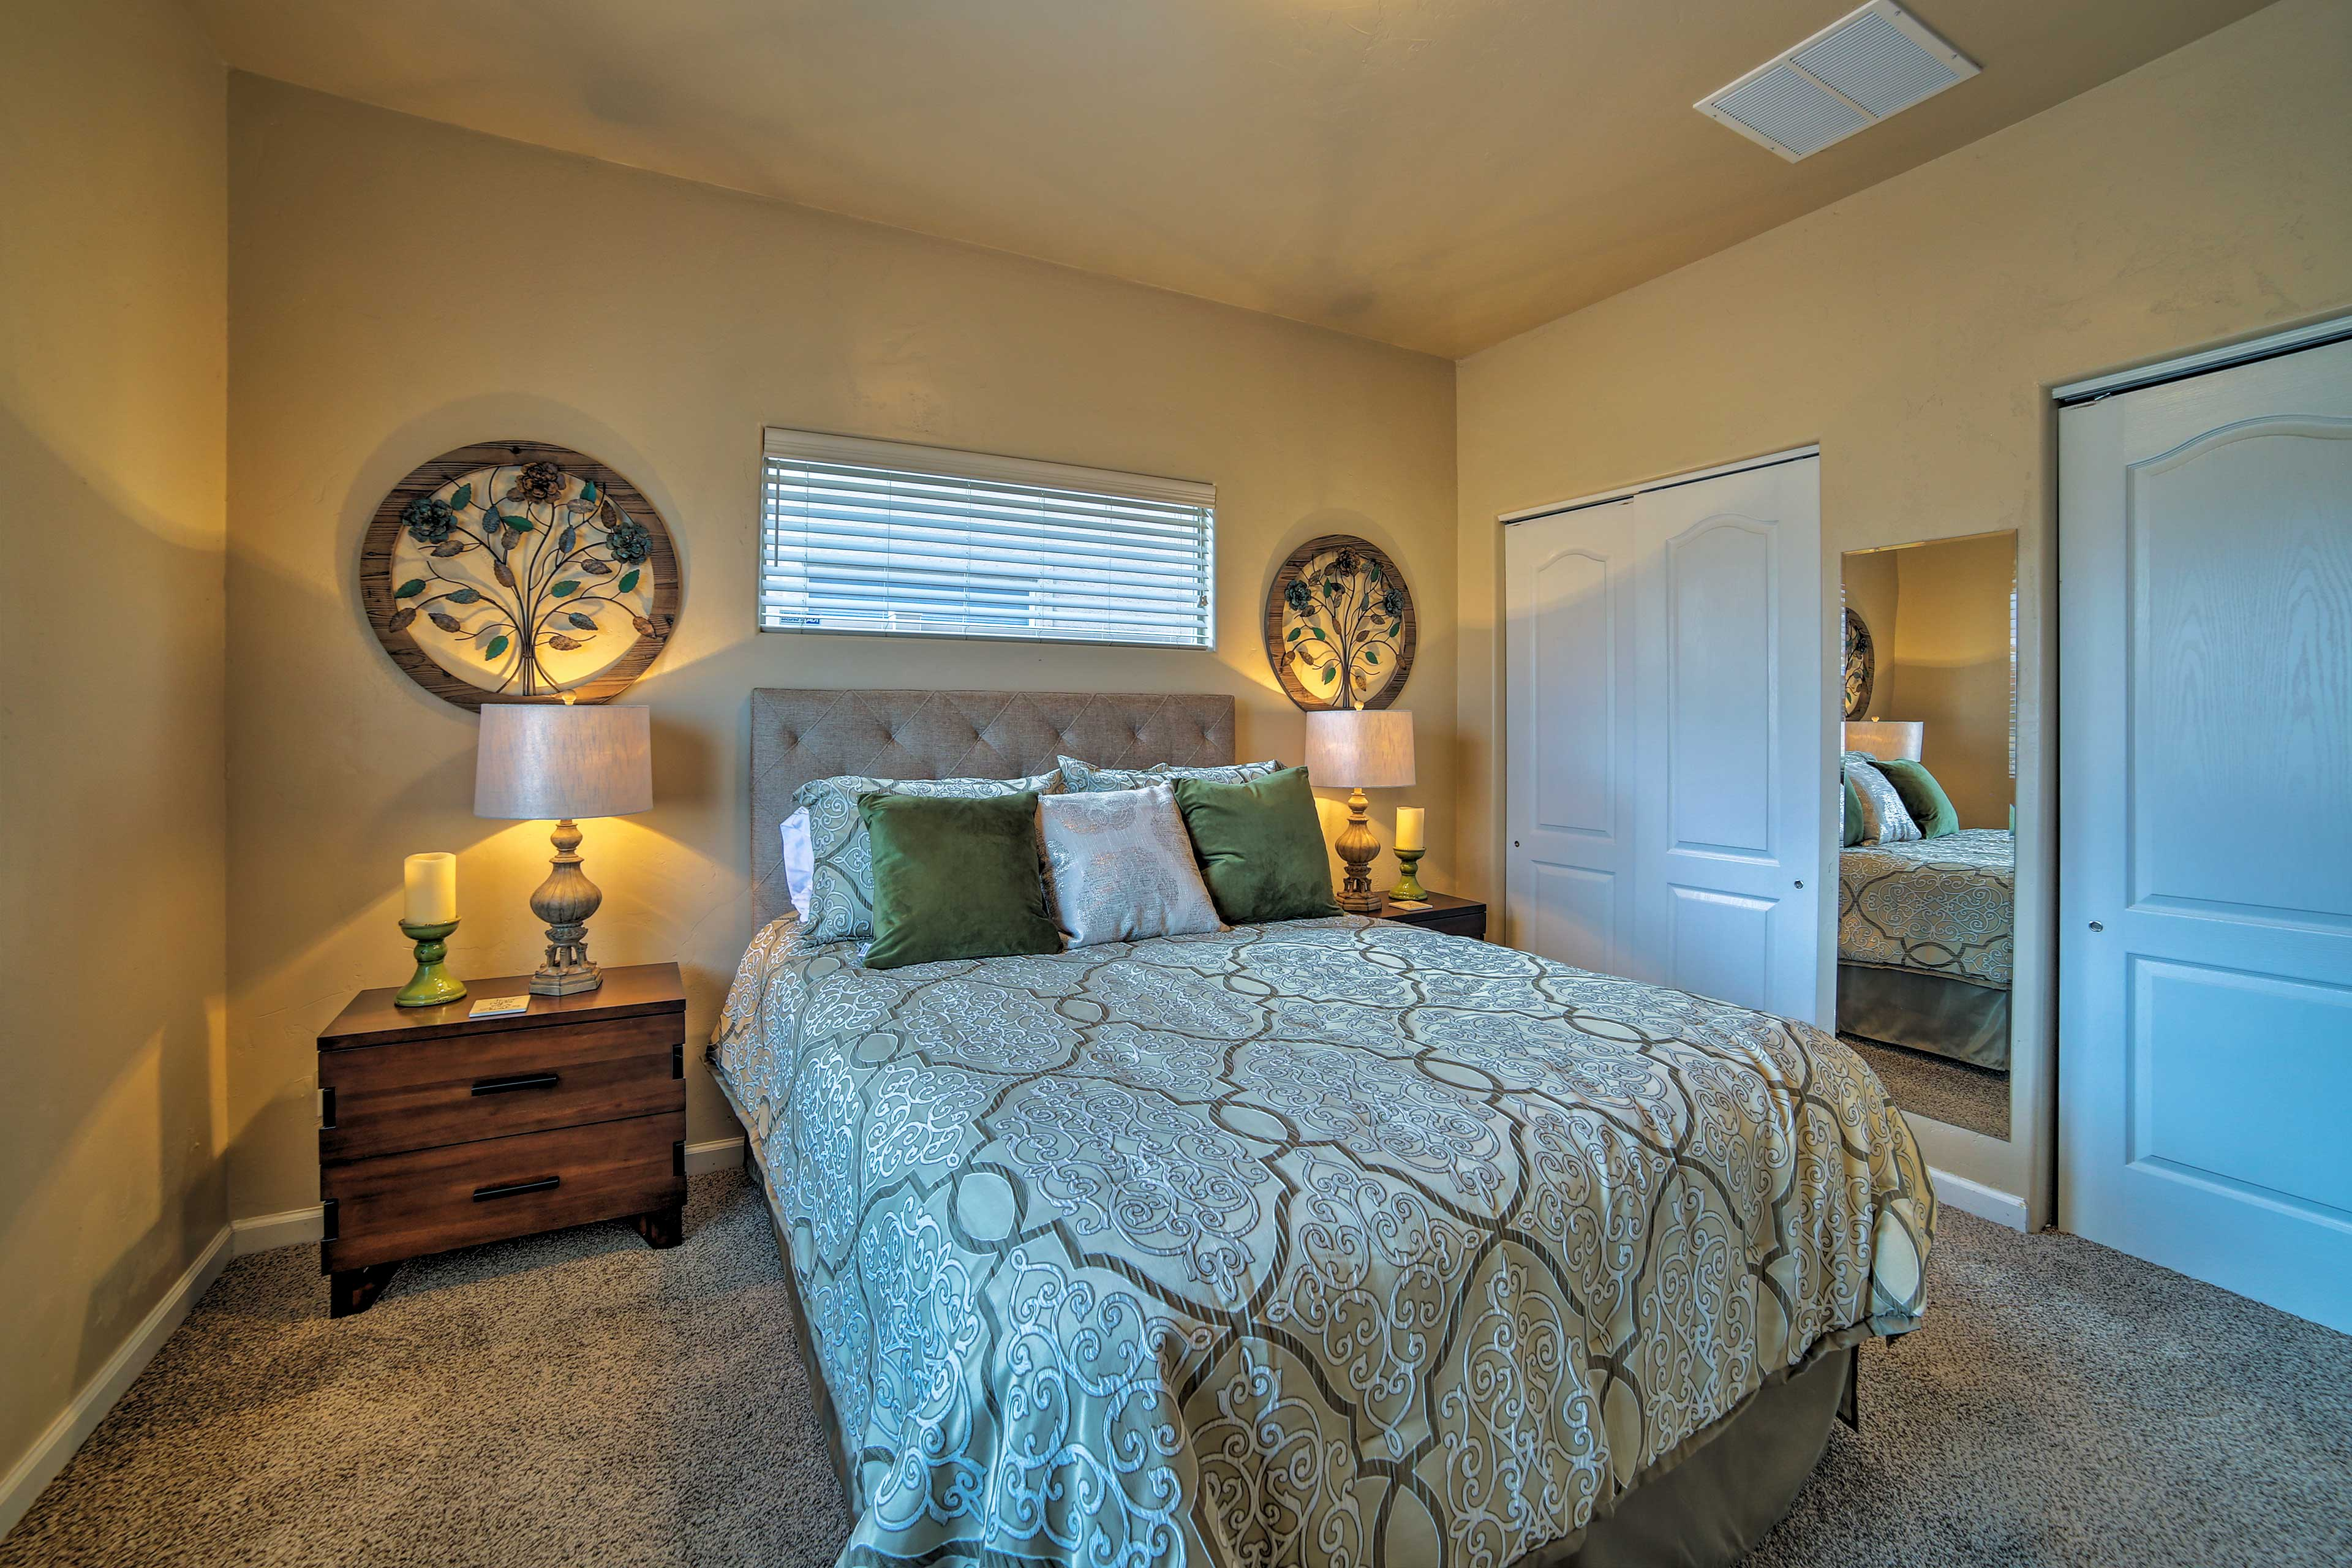 Two travelers can rest easy in this queen bed in the master bedroom.